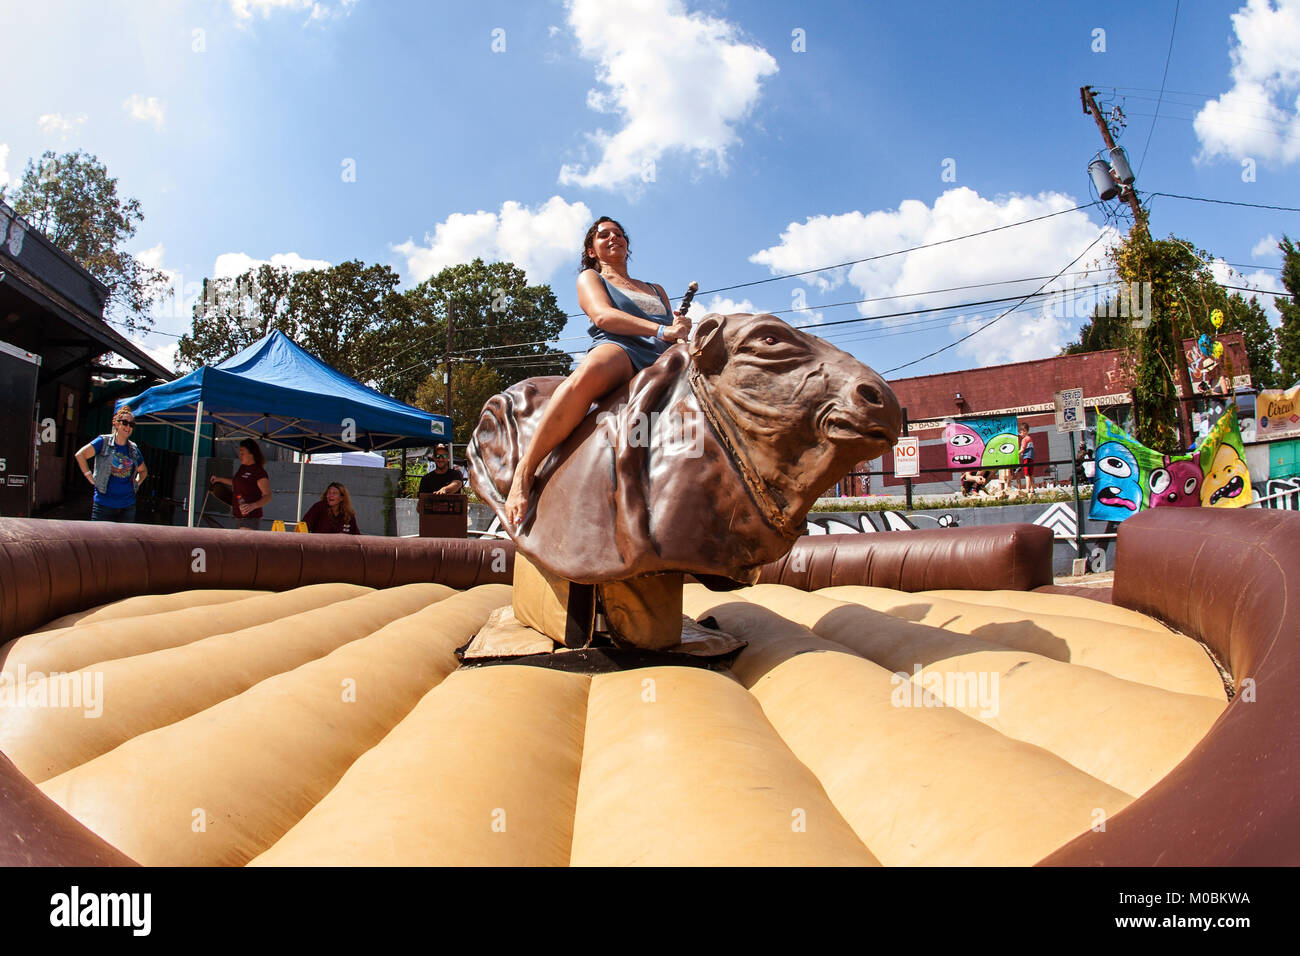 Atlanta, GA, USA - September 23, 2017:  A young woman tries to stay upright as she rides a mechanical bull at the - Stock Image